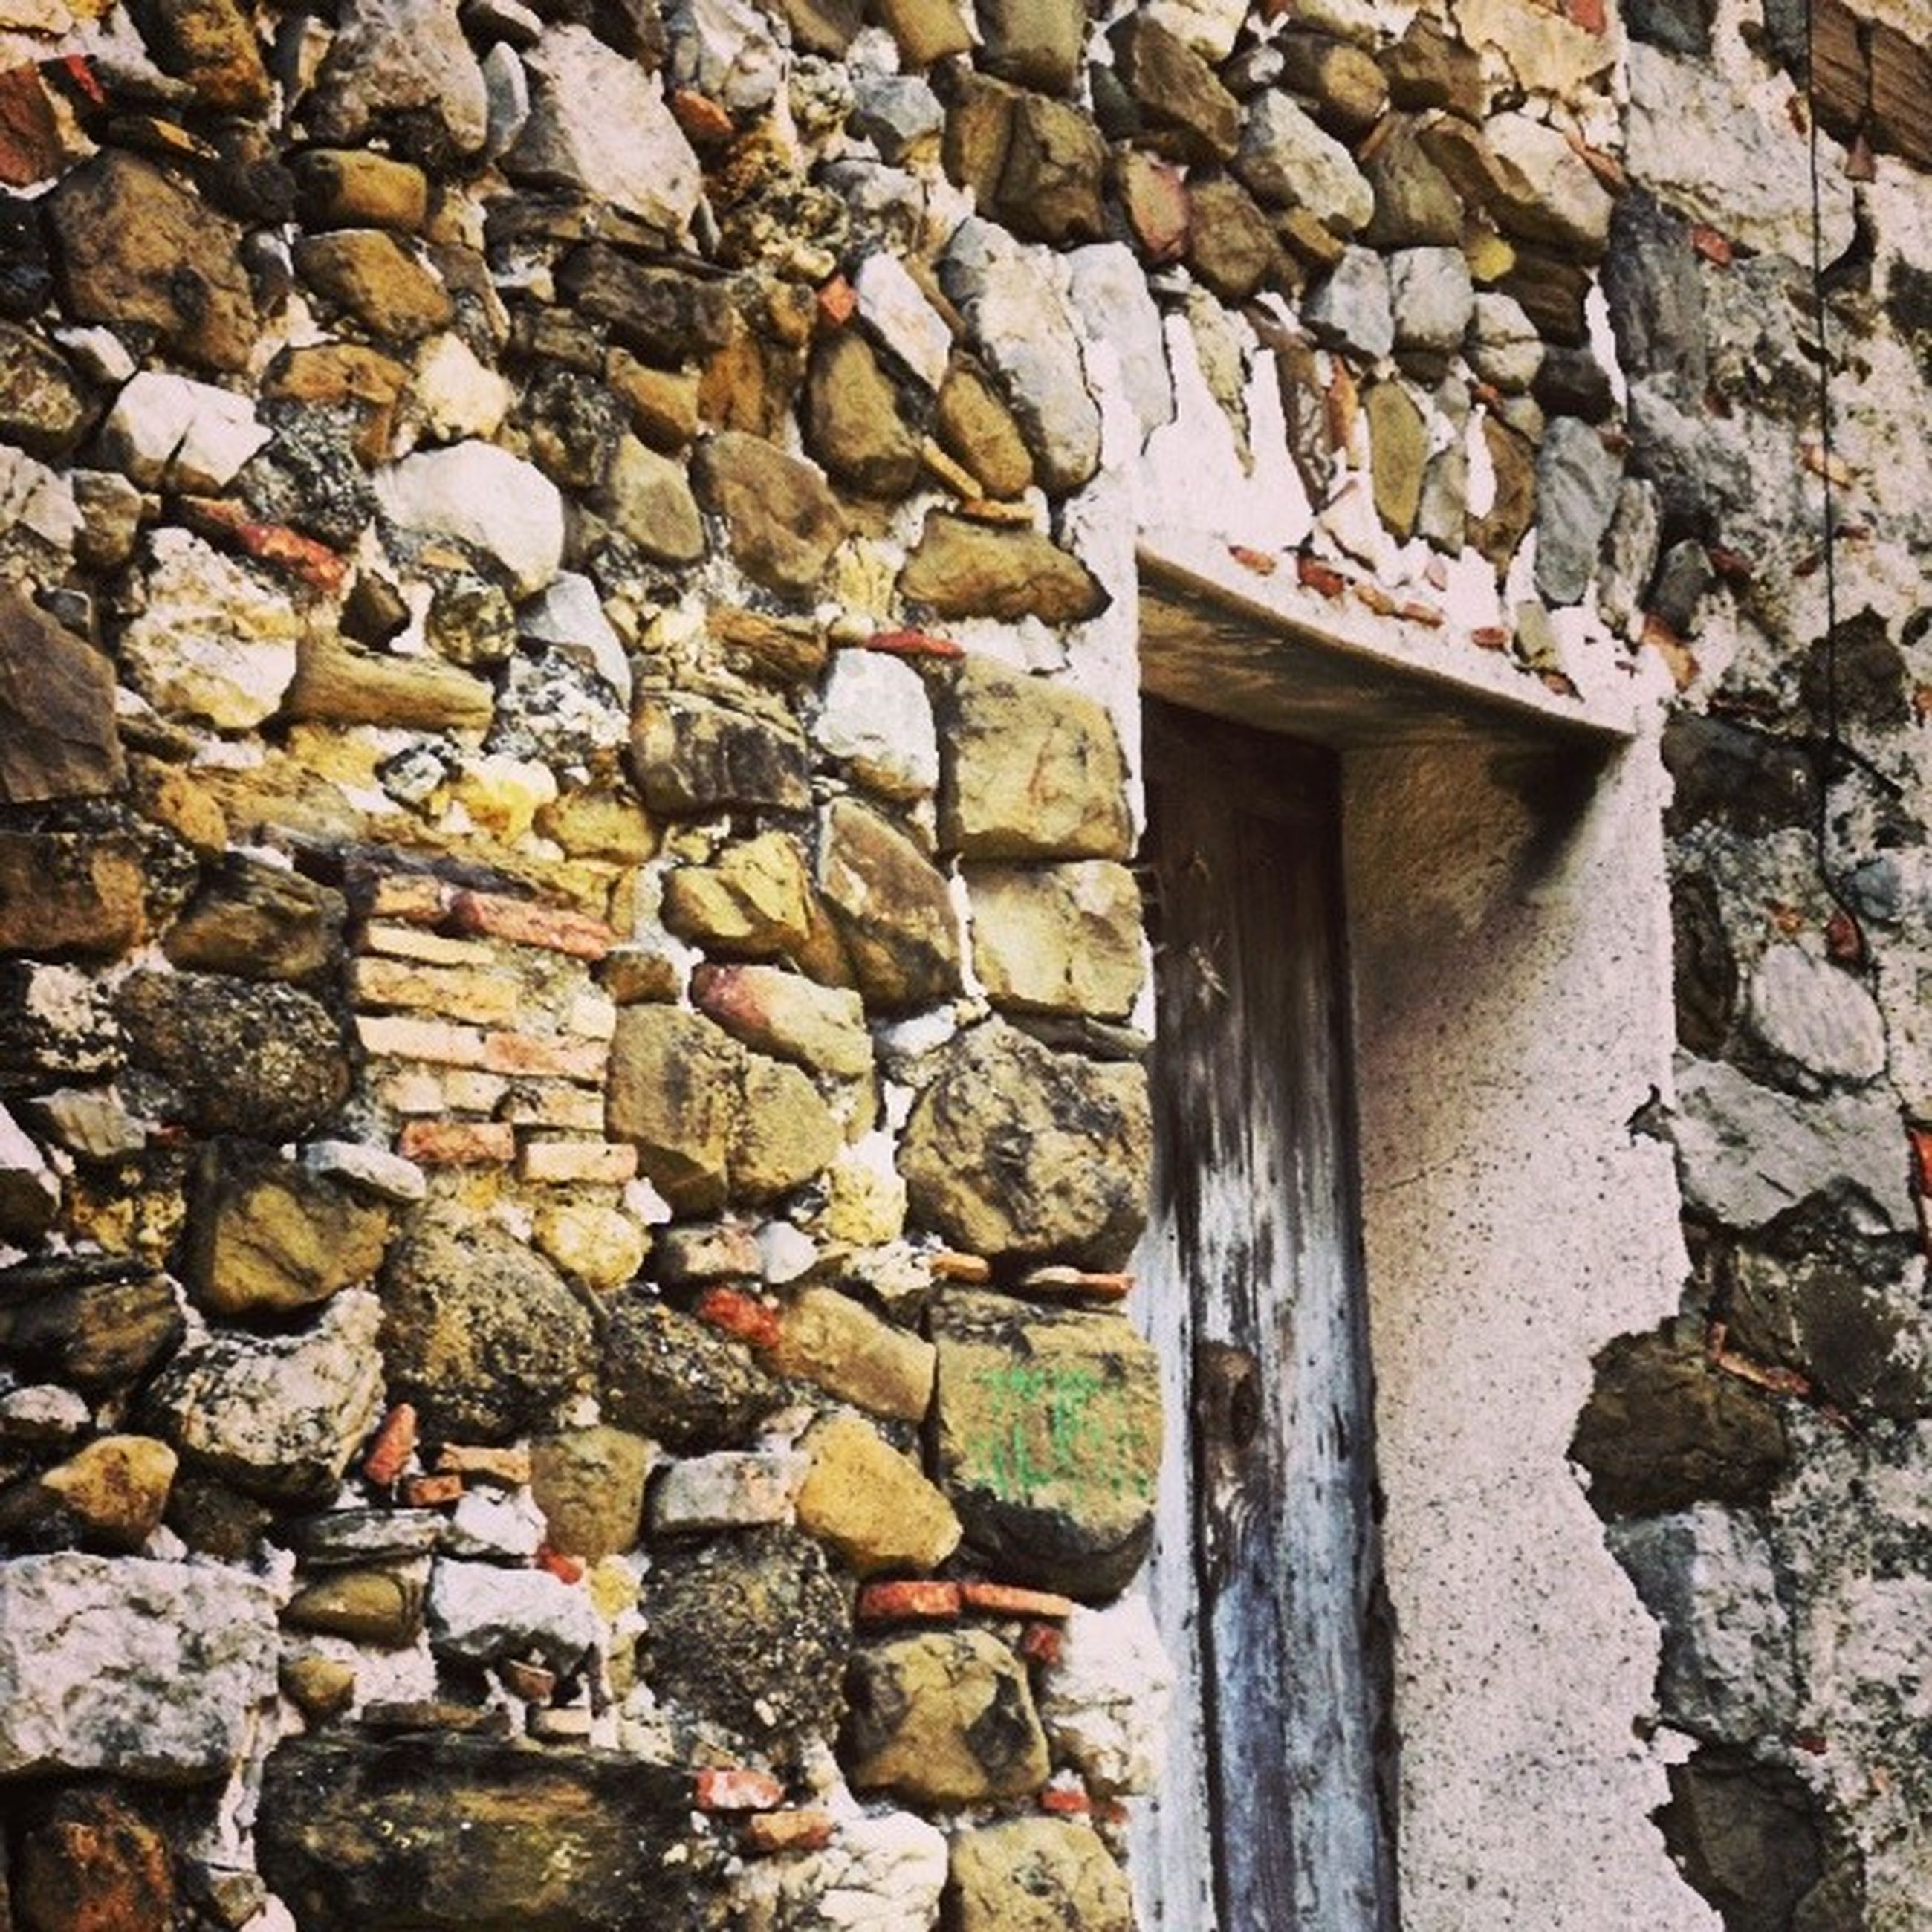 architecture, built structure, stone wall, building exterior, brick wall, wall - building feature, old, textured, weathered, house, wall, window, outdoors, brick, day, no people, stone, stone - object, low angle view, damaged